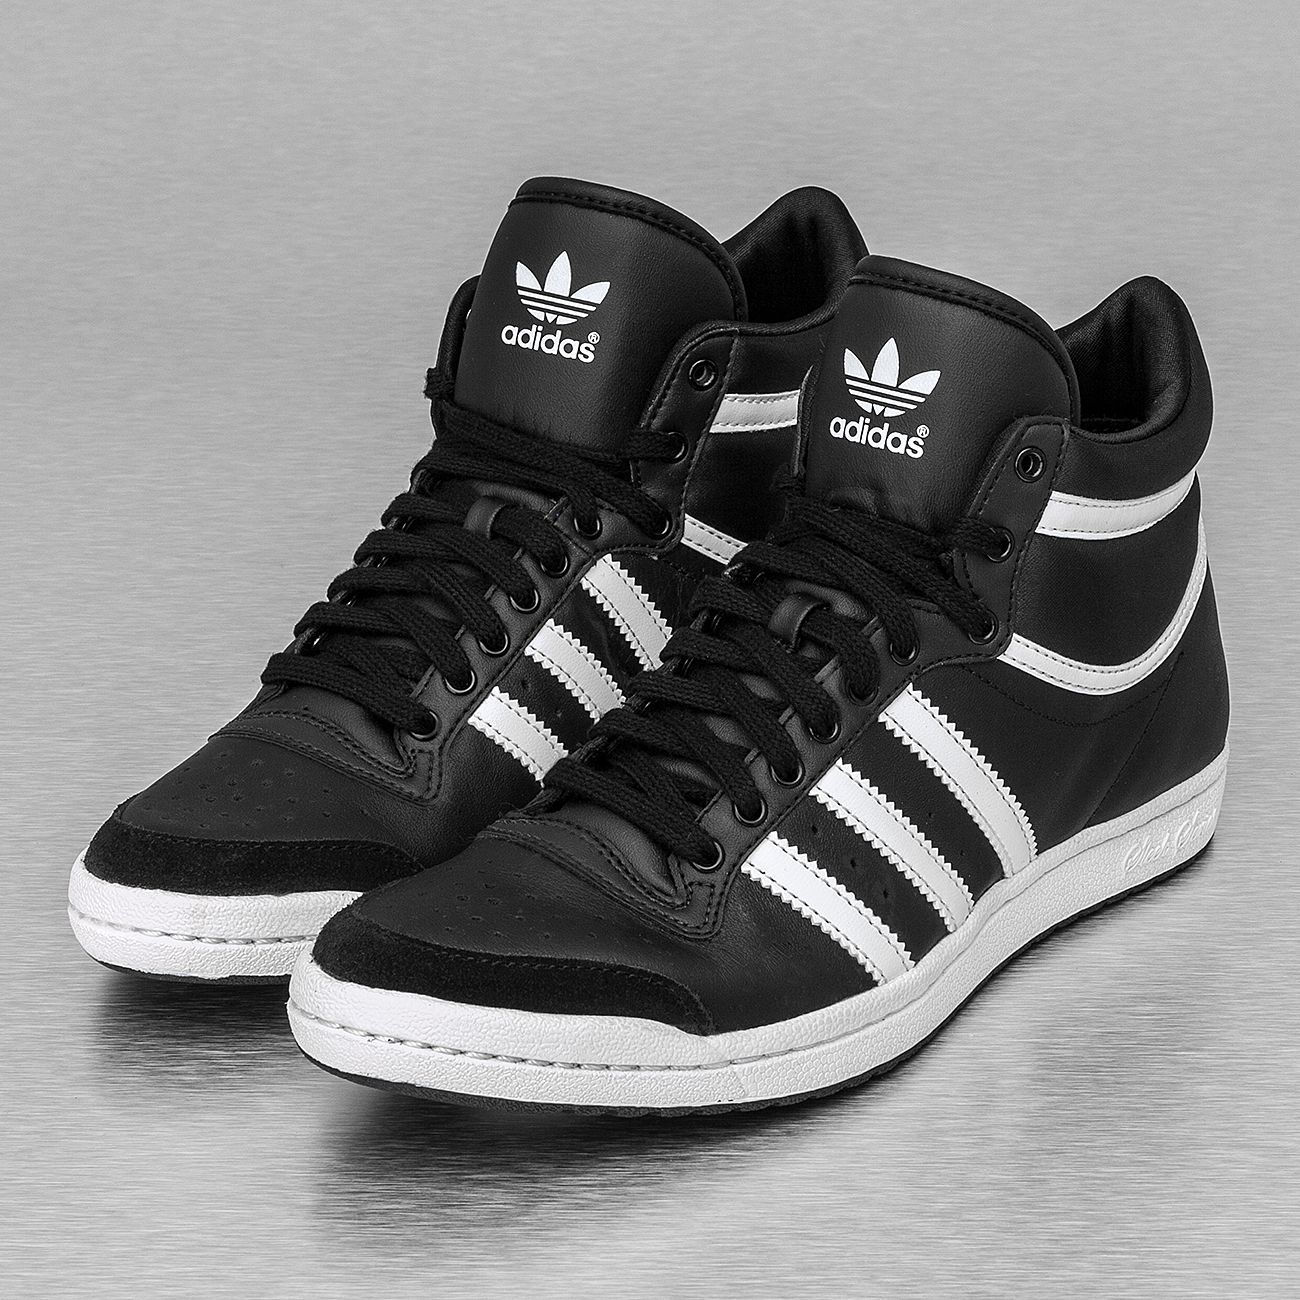 High 10 Hi Sleek Trainers Fitness Top Adidas w5x4qISPTq